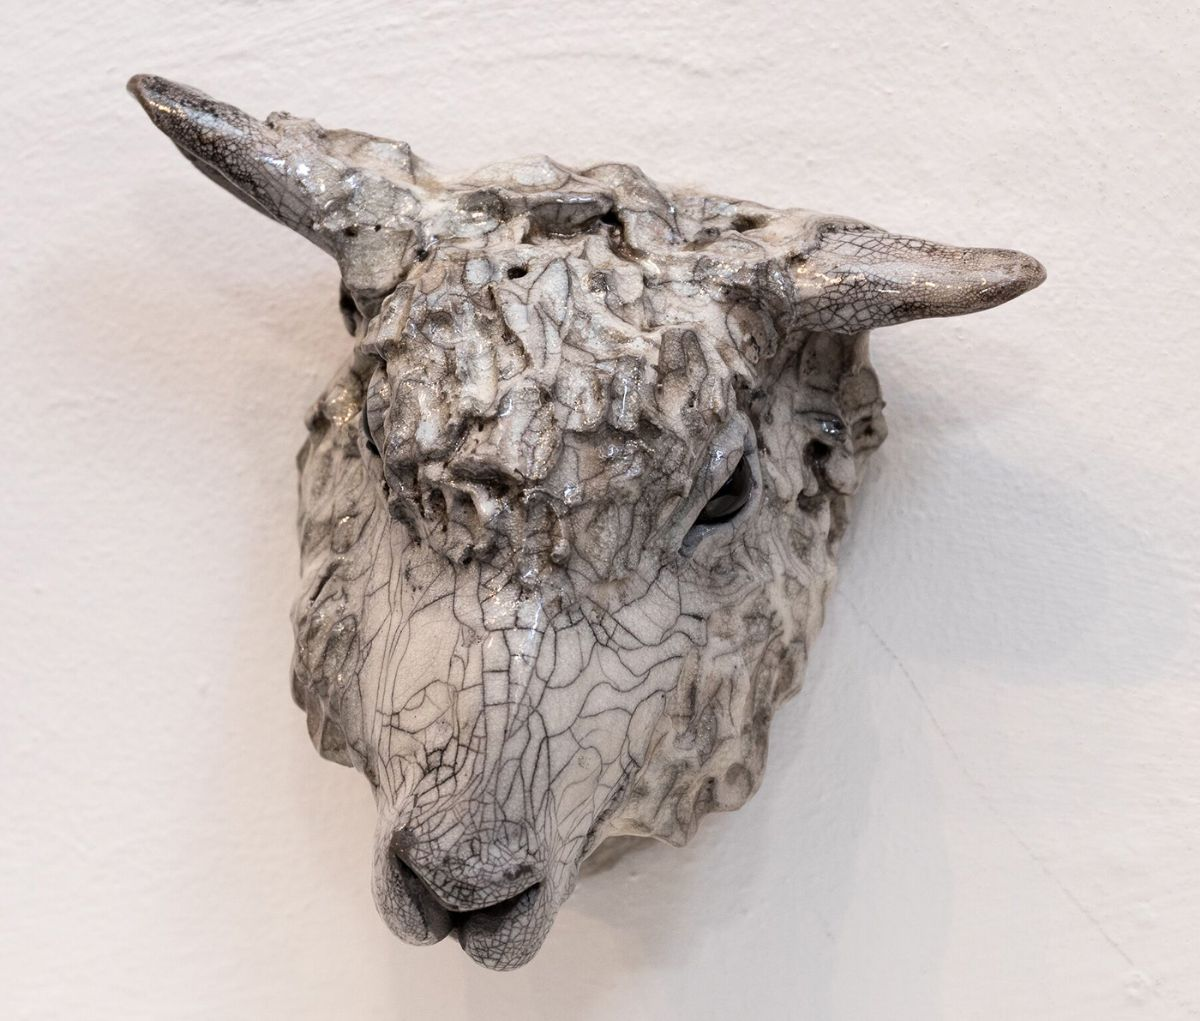 Shaggy sheep head 4 by Carol Read Richard Ballantyne